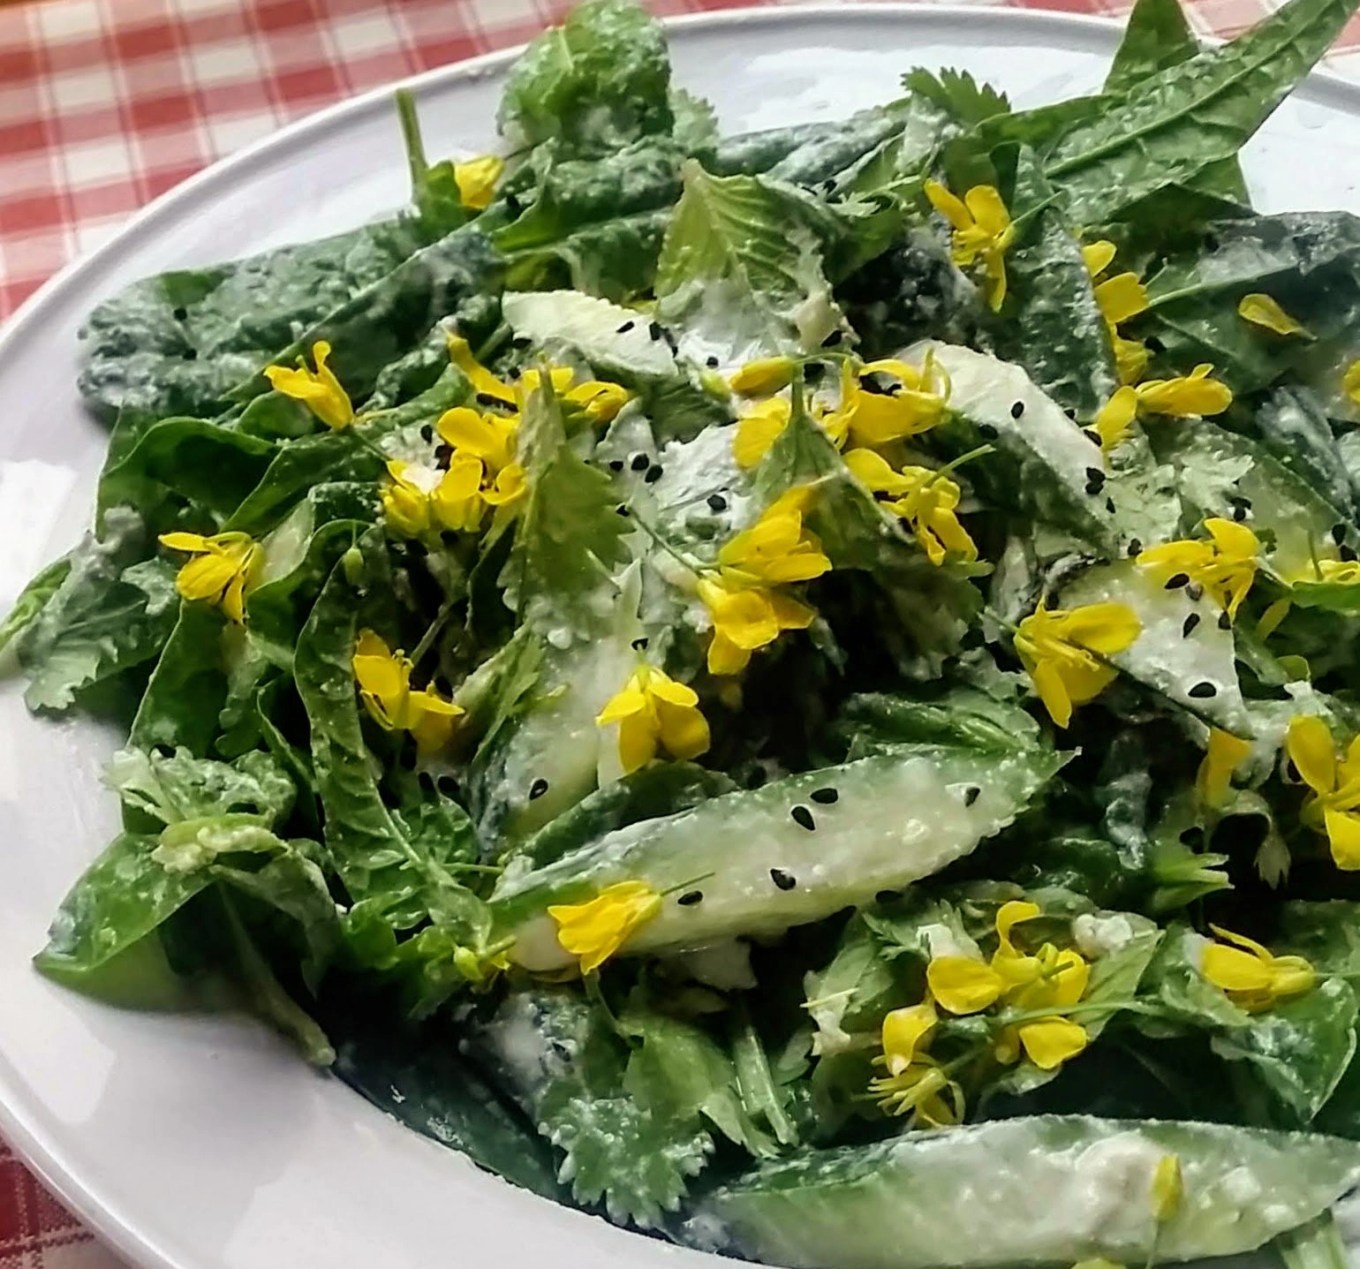 A salad of freshly picked spinach and herbs with cucumber and lemon ginger dressing, garnished with nigella seeds and mizuna flowers